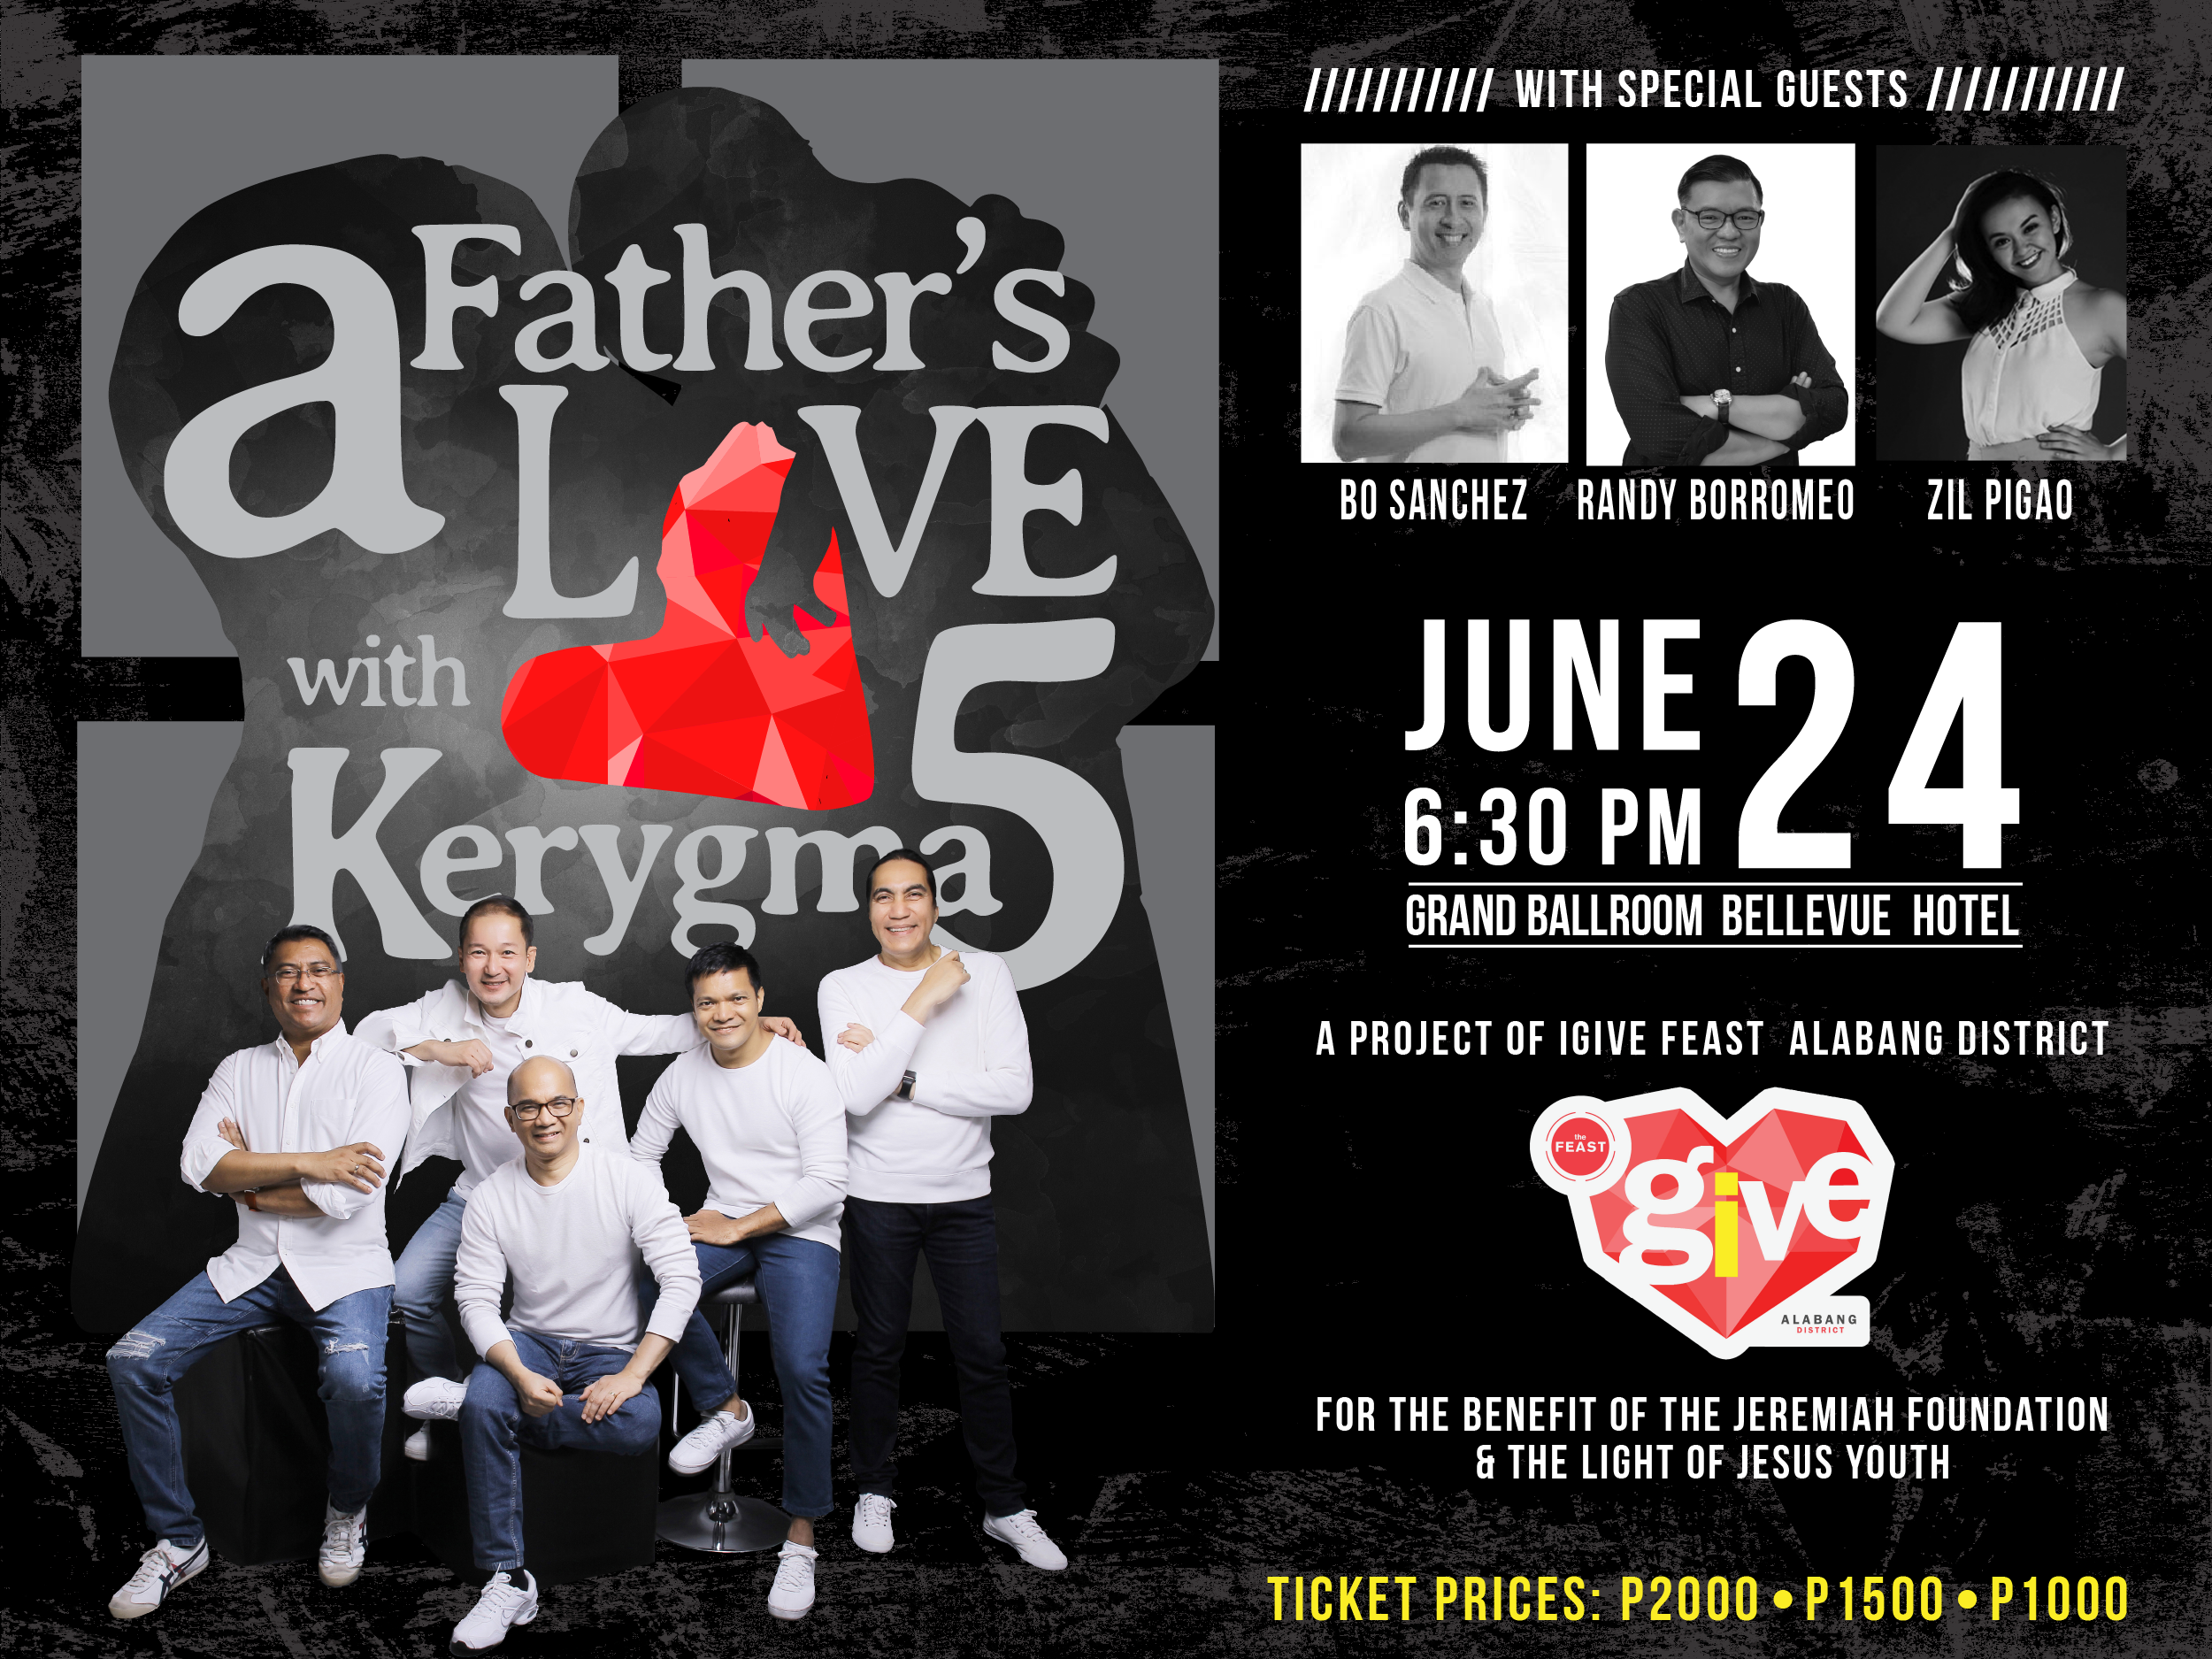 A Father's Love with Kerygma 5